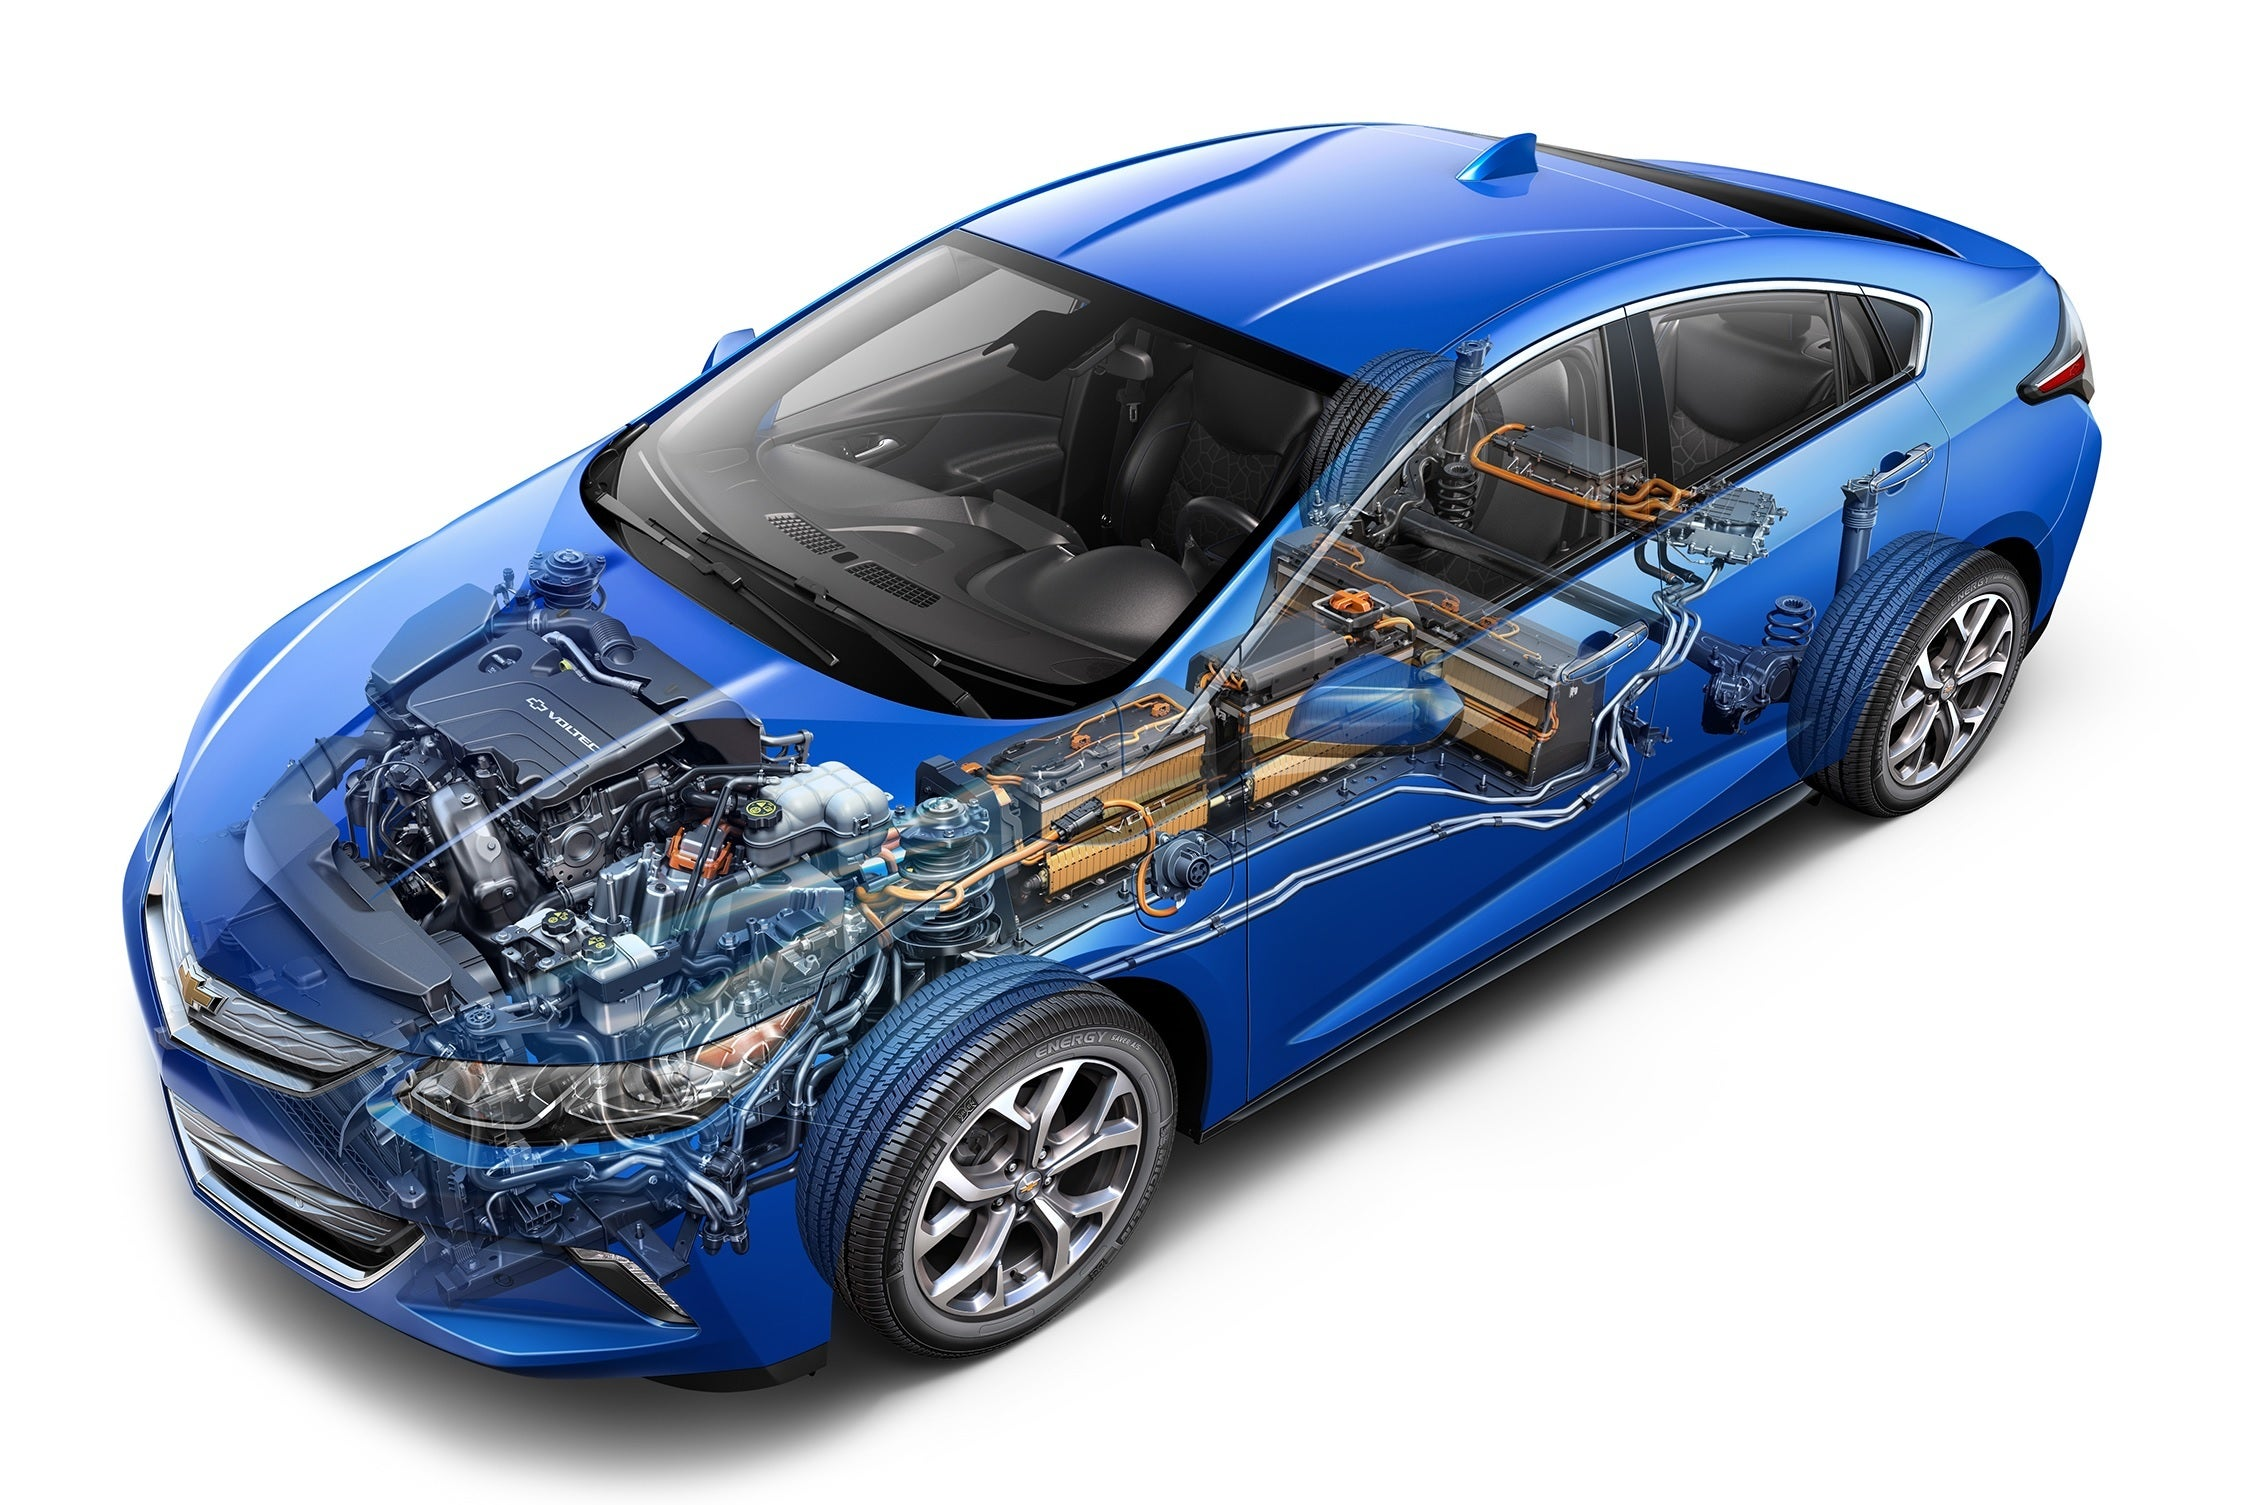 2016 Chevy Volt Review The Cult Hero Of Plug In Hybrids Reaches For Subaru Engine Compartment Diagram Chevrolet Car Drivetrain Cropped